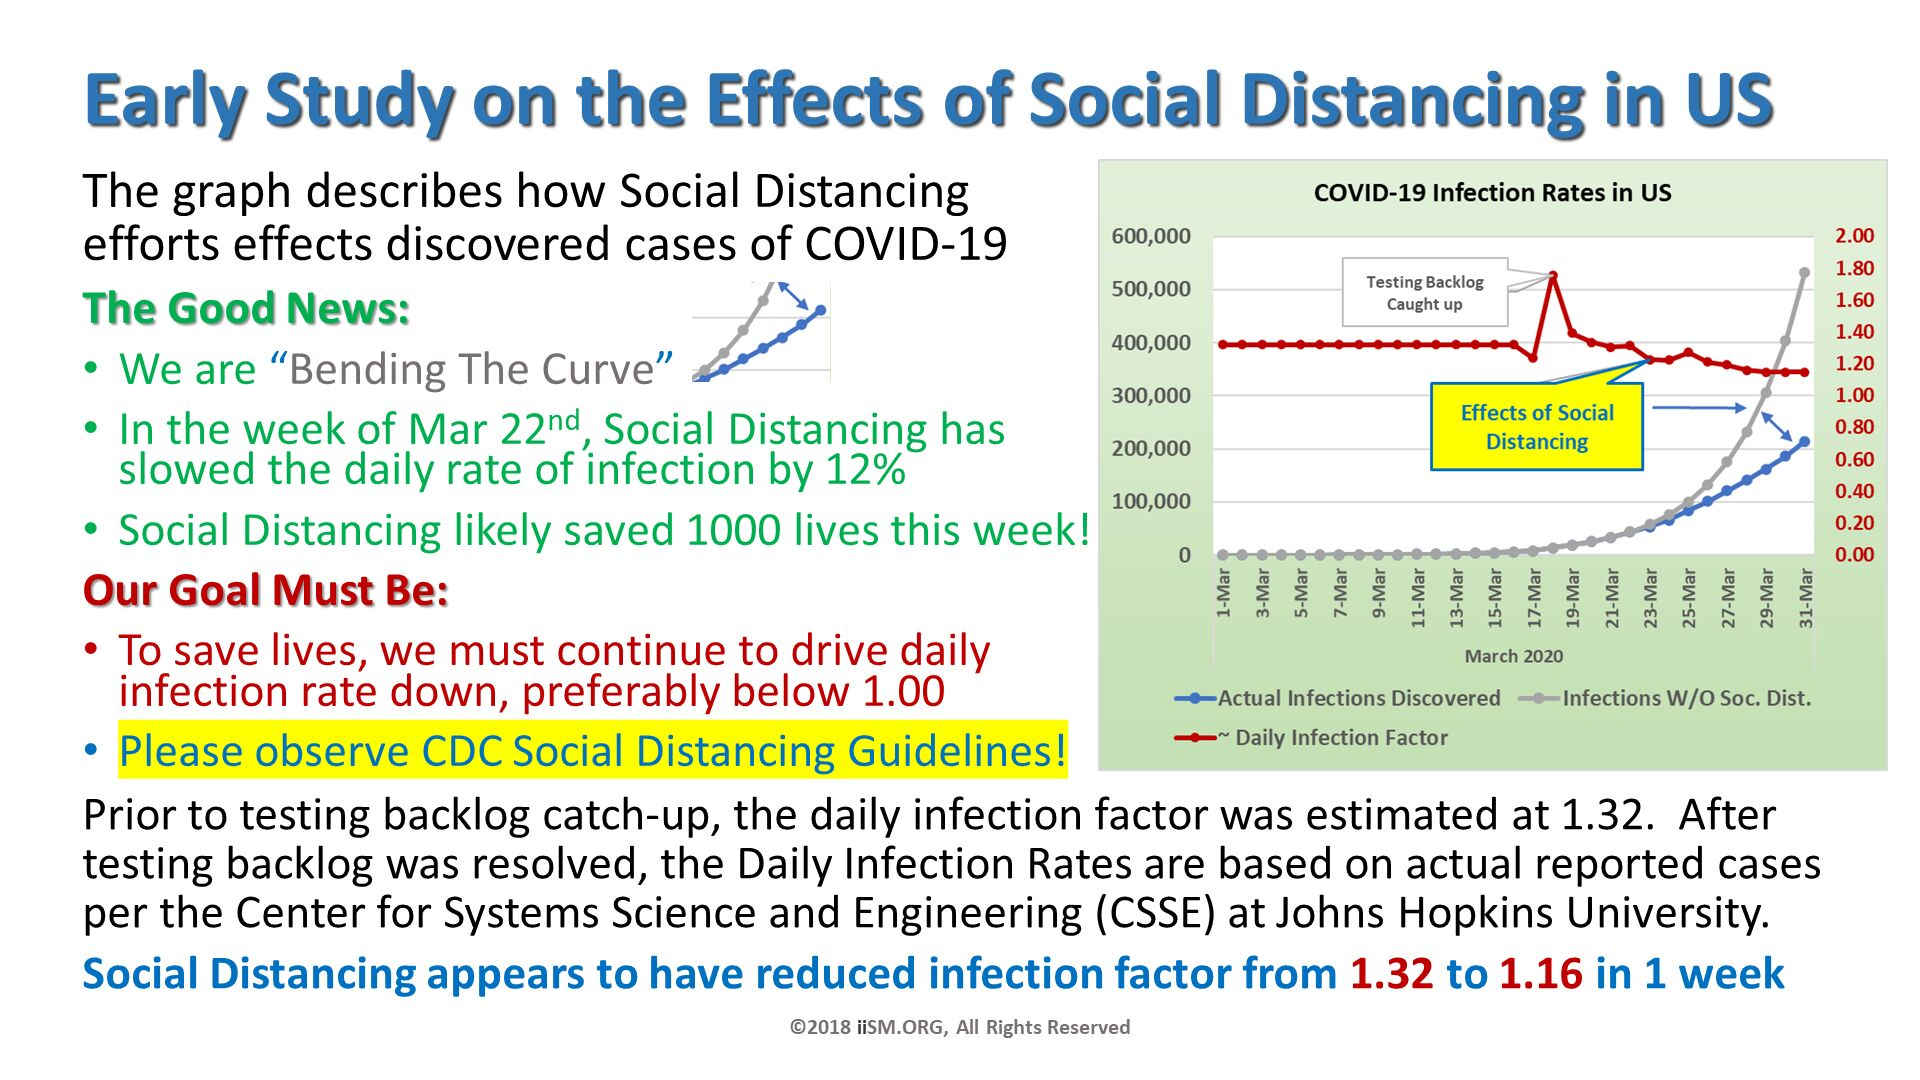 "Early Study on the Effects of Social Distancing in US. The graph describes how Social Distancing efforts effects discovered cases of COVID-19   The Good News: We are ""Bending The Curve""  In the week of Mar 22nd, Social Distancing has slowed the daily rate of infection by 12% Social Distancing likely saved 1000 lives this week! Our Goal Must Be: To save lives, we must continue to drive daily infection rate down, preferably below 1.00 Please observe CDC Social Distancing Guidelines!. ©2018 iiSM.ORG, All Rights Reserved. Prior to testing backlog catch-up, the daily infection factor was estimated at 1.32.  After testing backlog was resolved, the Daily Infection Rates are based on actual reported cases per the Center for Systems Science and Engineering (CSSE) at Johns Hopkins University. Social Distancing appears to have reduced infection factor from 1.32 to 1.16 in 1 week."